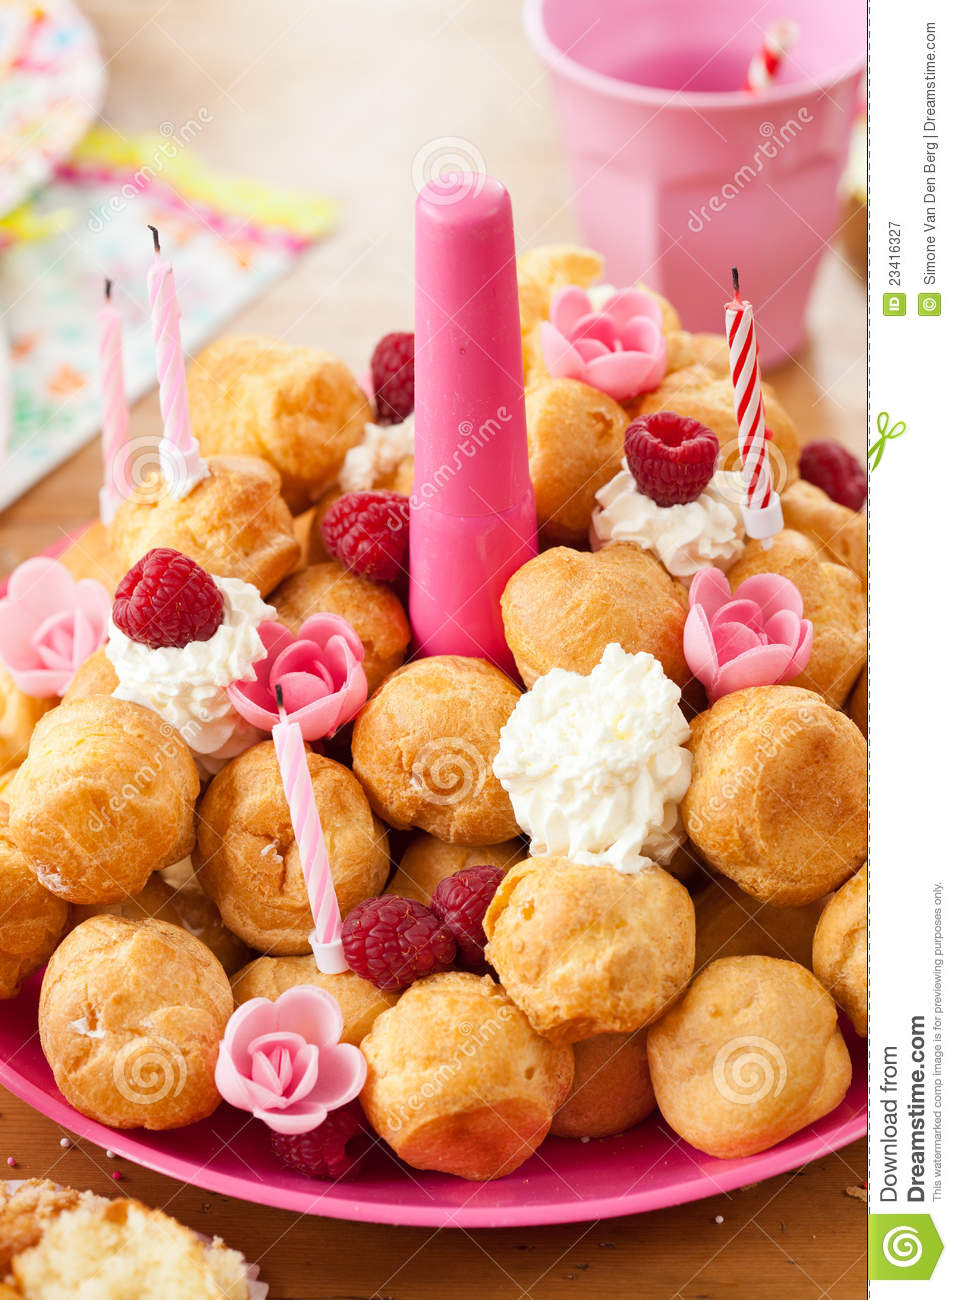 Birthday Pastry Cake Images Download : Birthday Pastries Royalty Free Stock Photography - Image ...